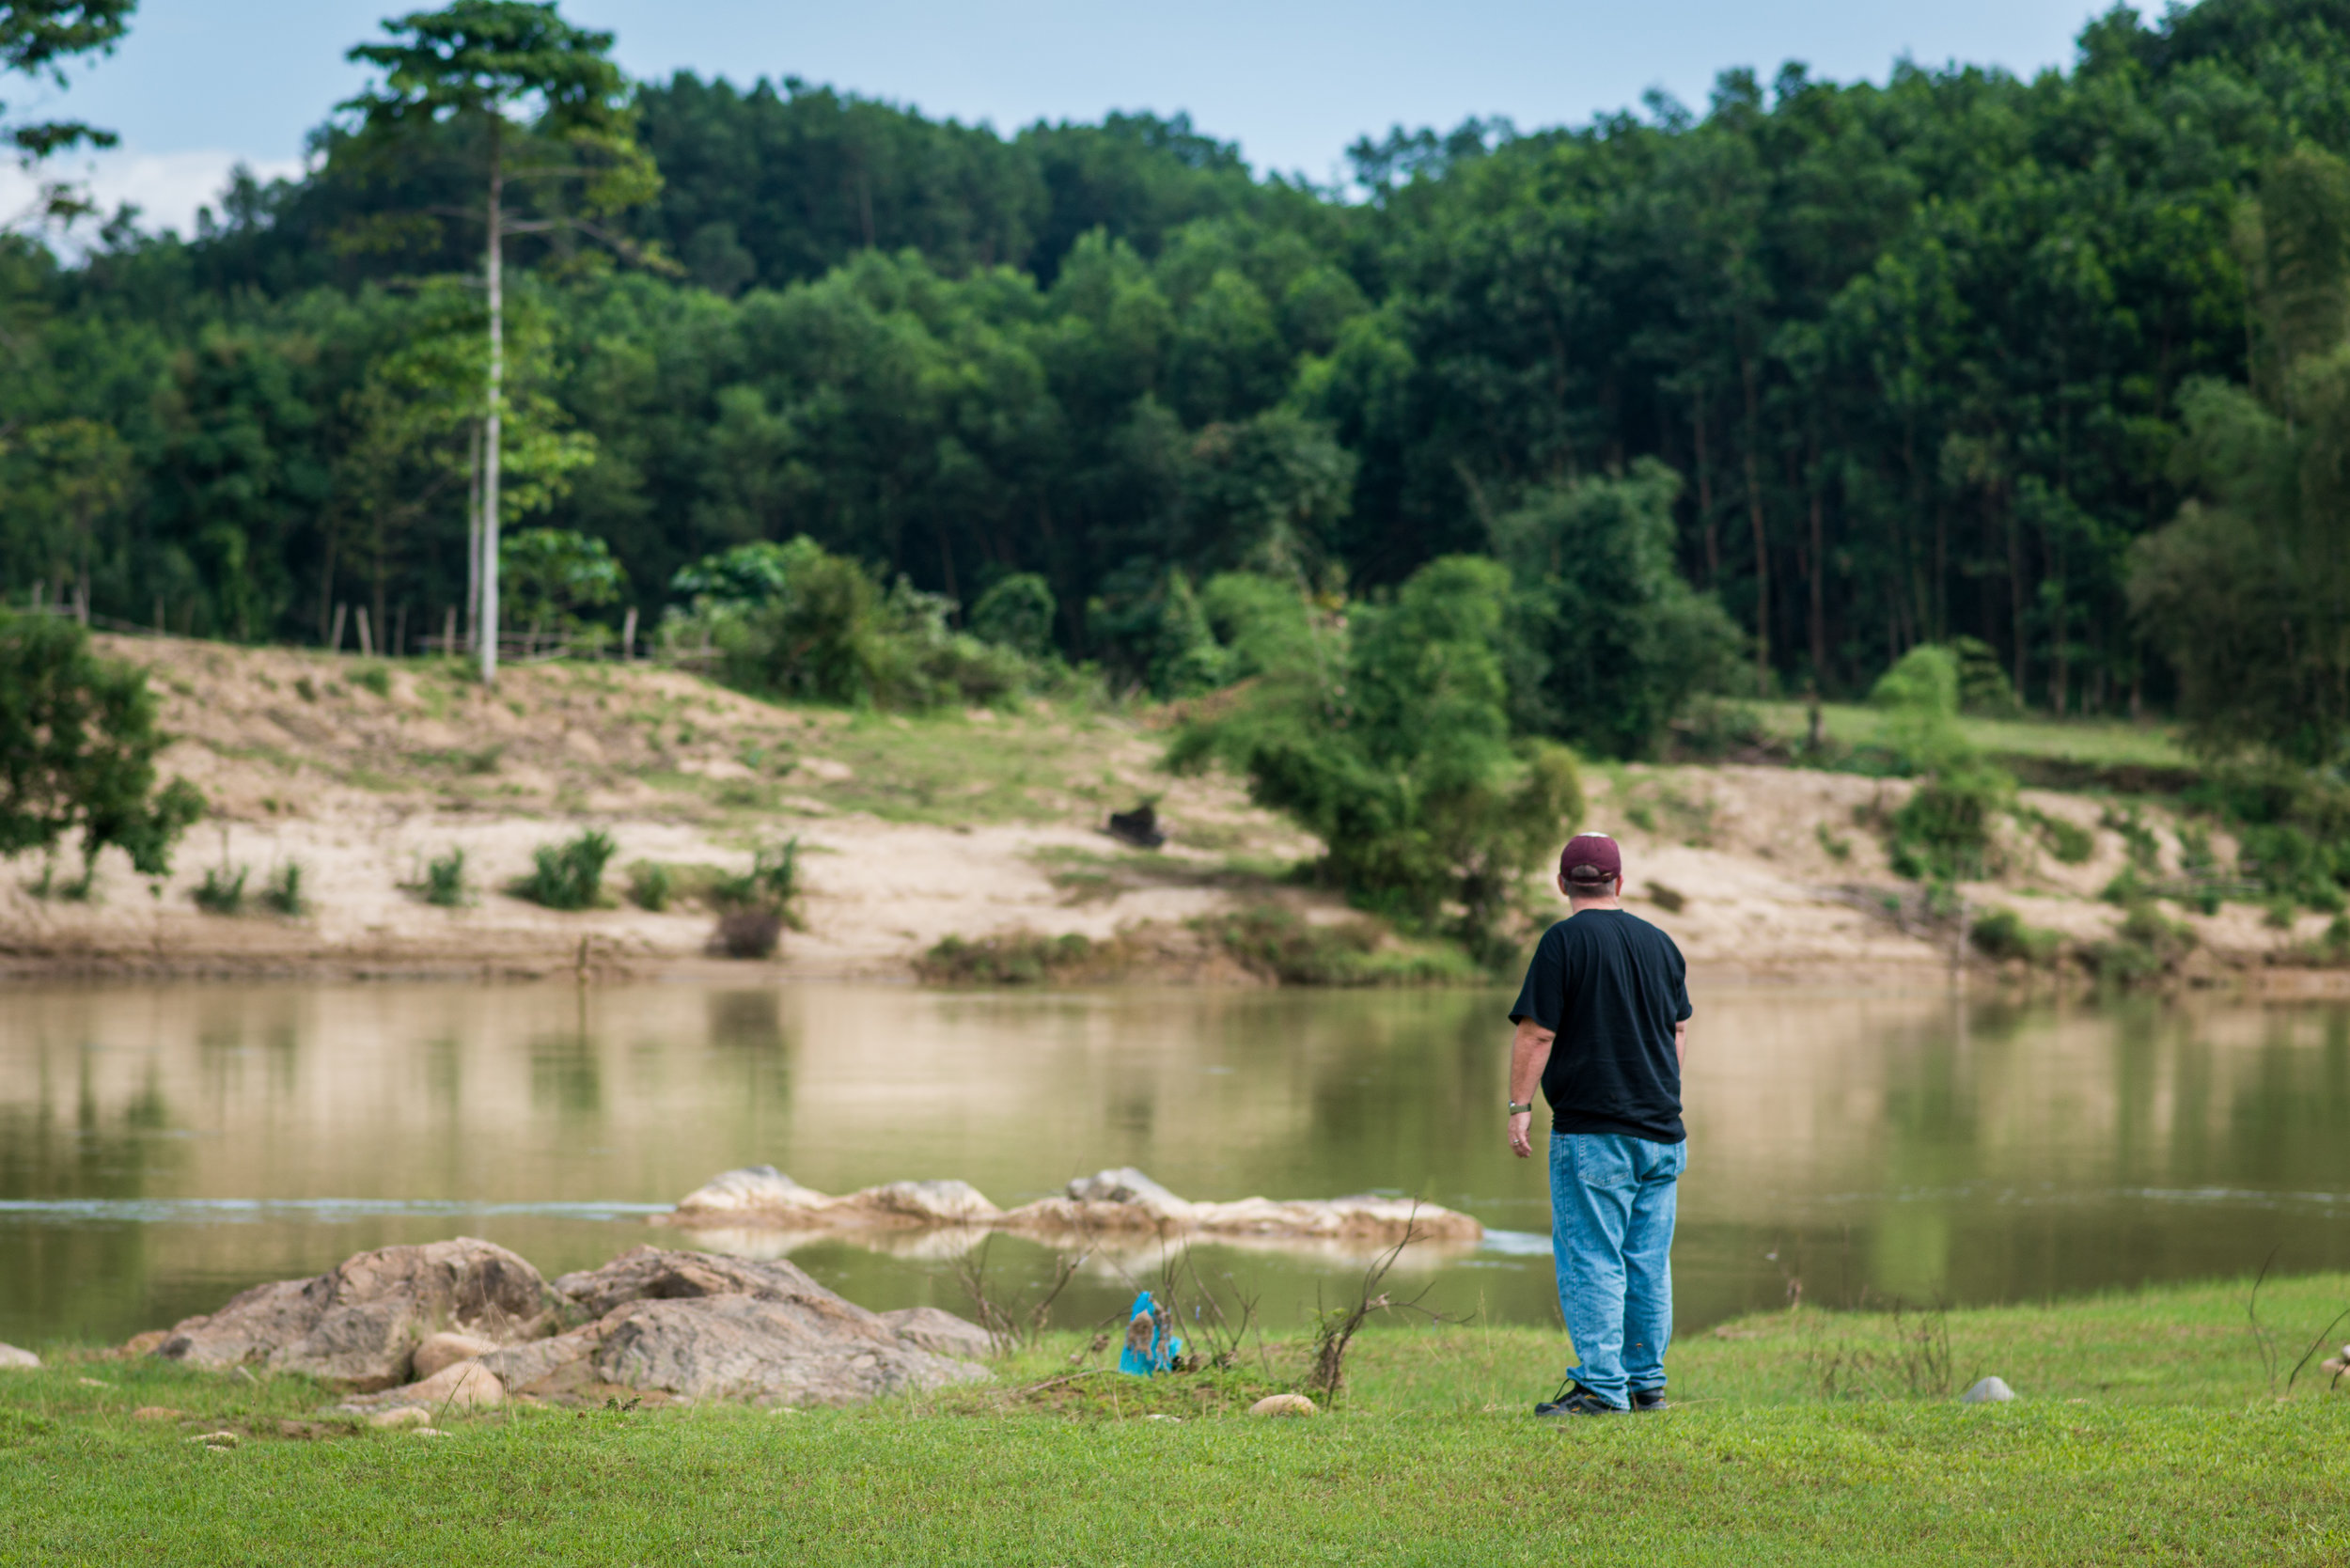 Mike Burkett looks upstream toward the area where his father drowned. Quang Ngai Province.